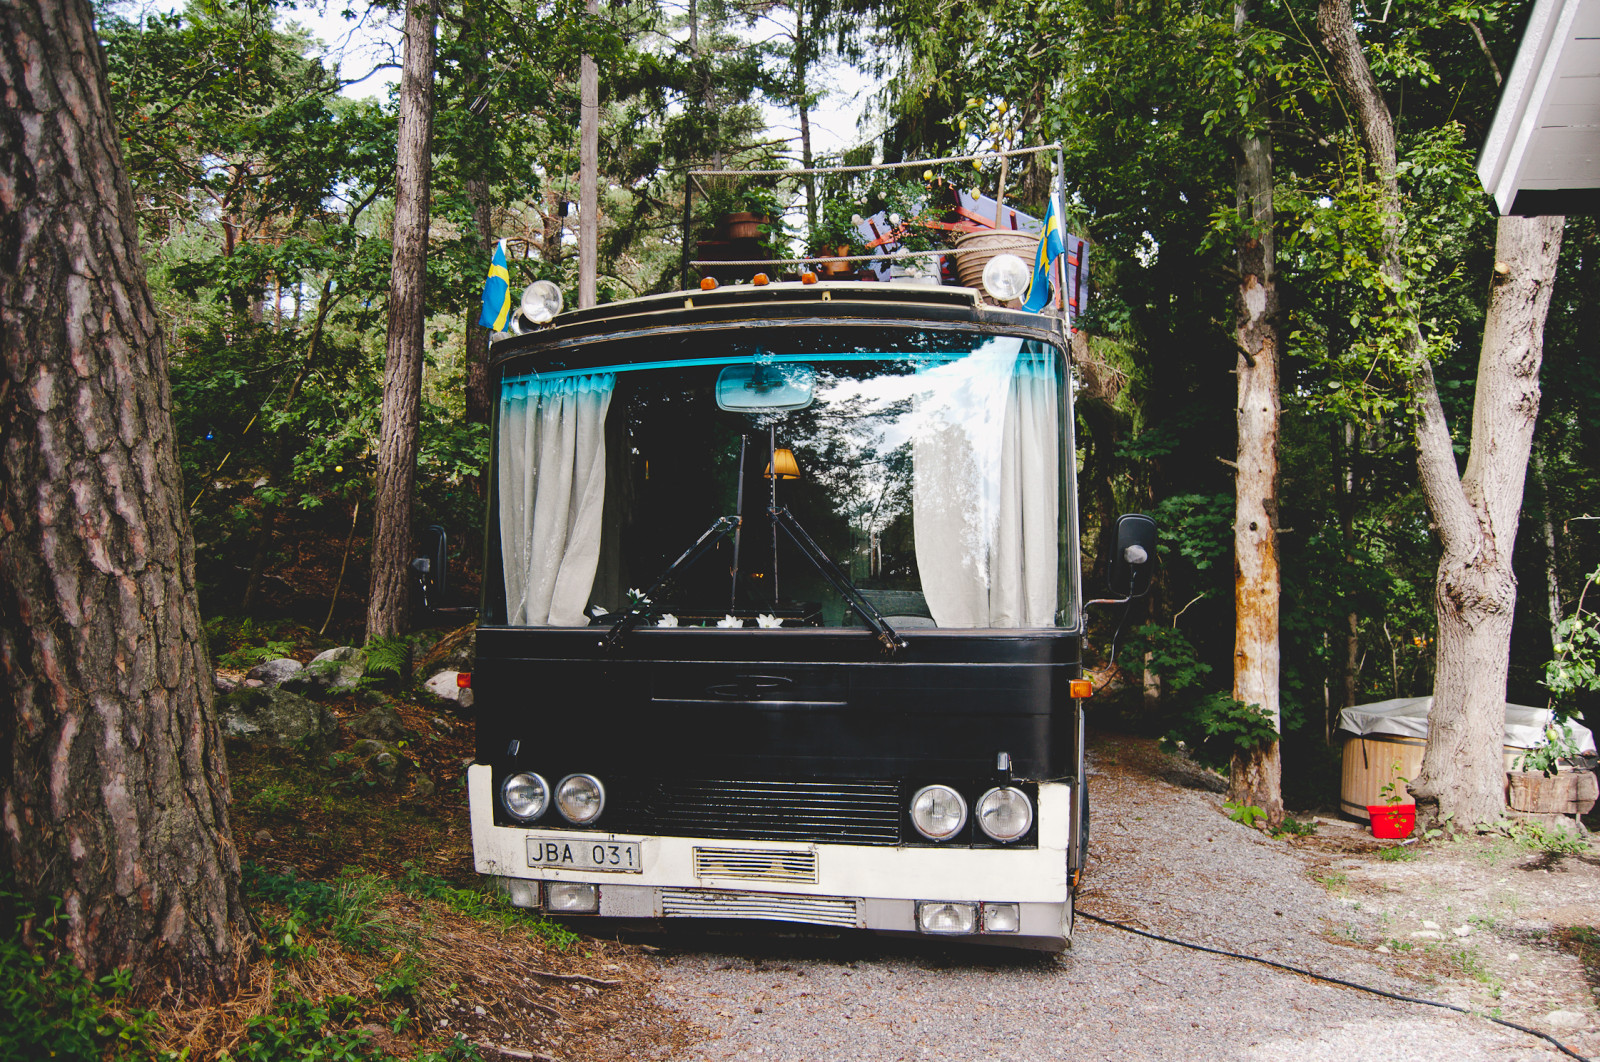 Stina and Jon's home and vintage bus is situated in one of Sweden's oldest housing communities 'Vita Hästen'.